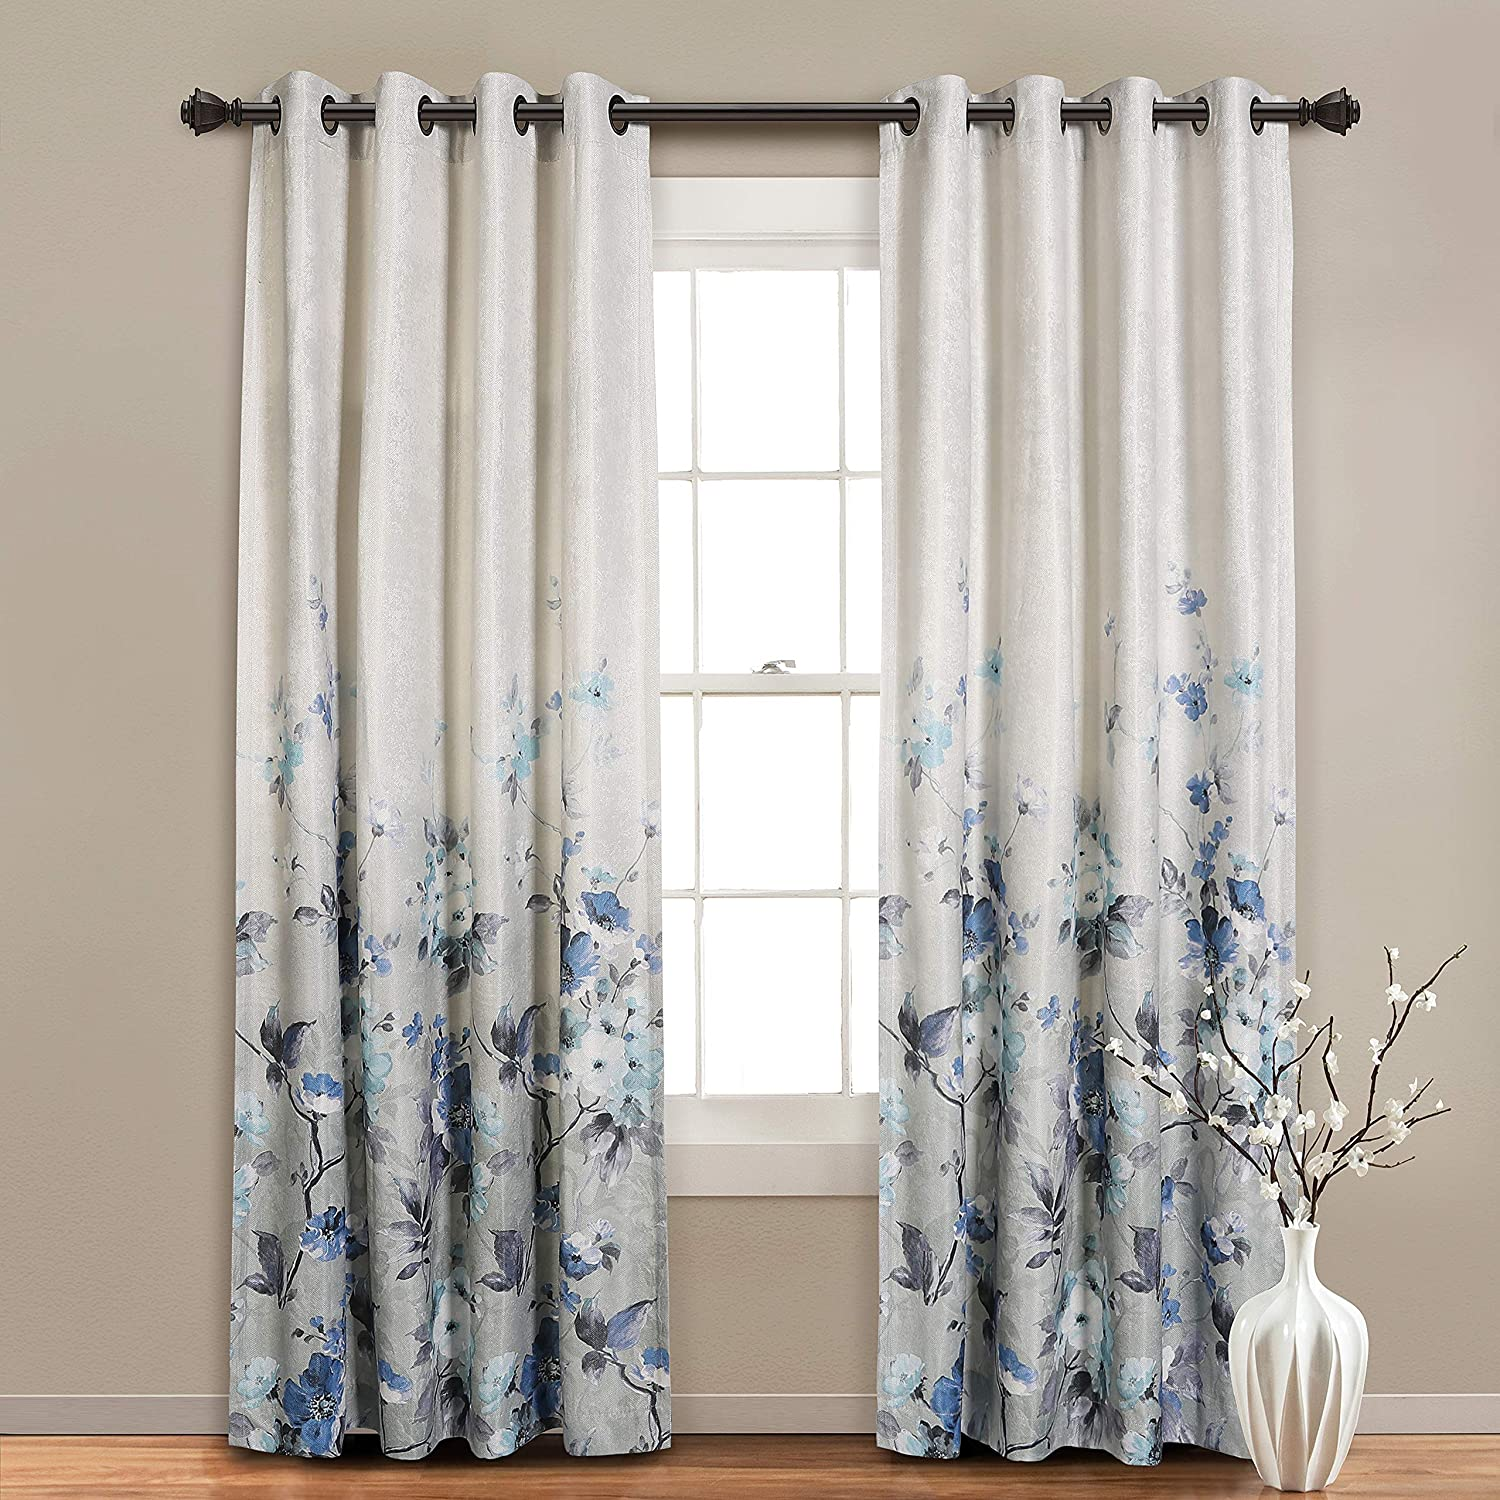 MYSKY HOME Floral Design Print Grommet top Thermal Insulated Faux Linen Room Darkening Curtains, 52 x 84 Inch, Purple, 1 Panel